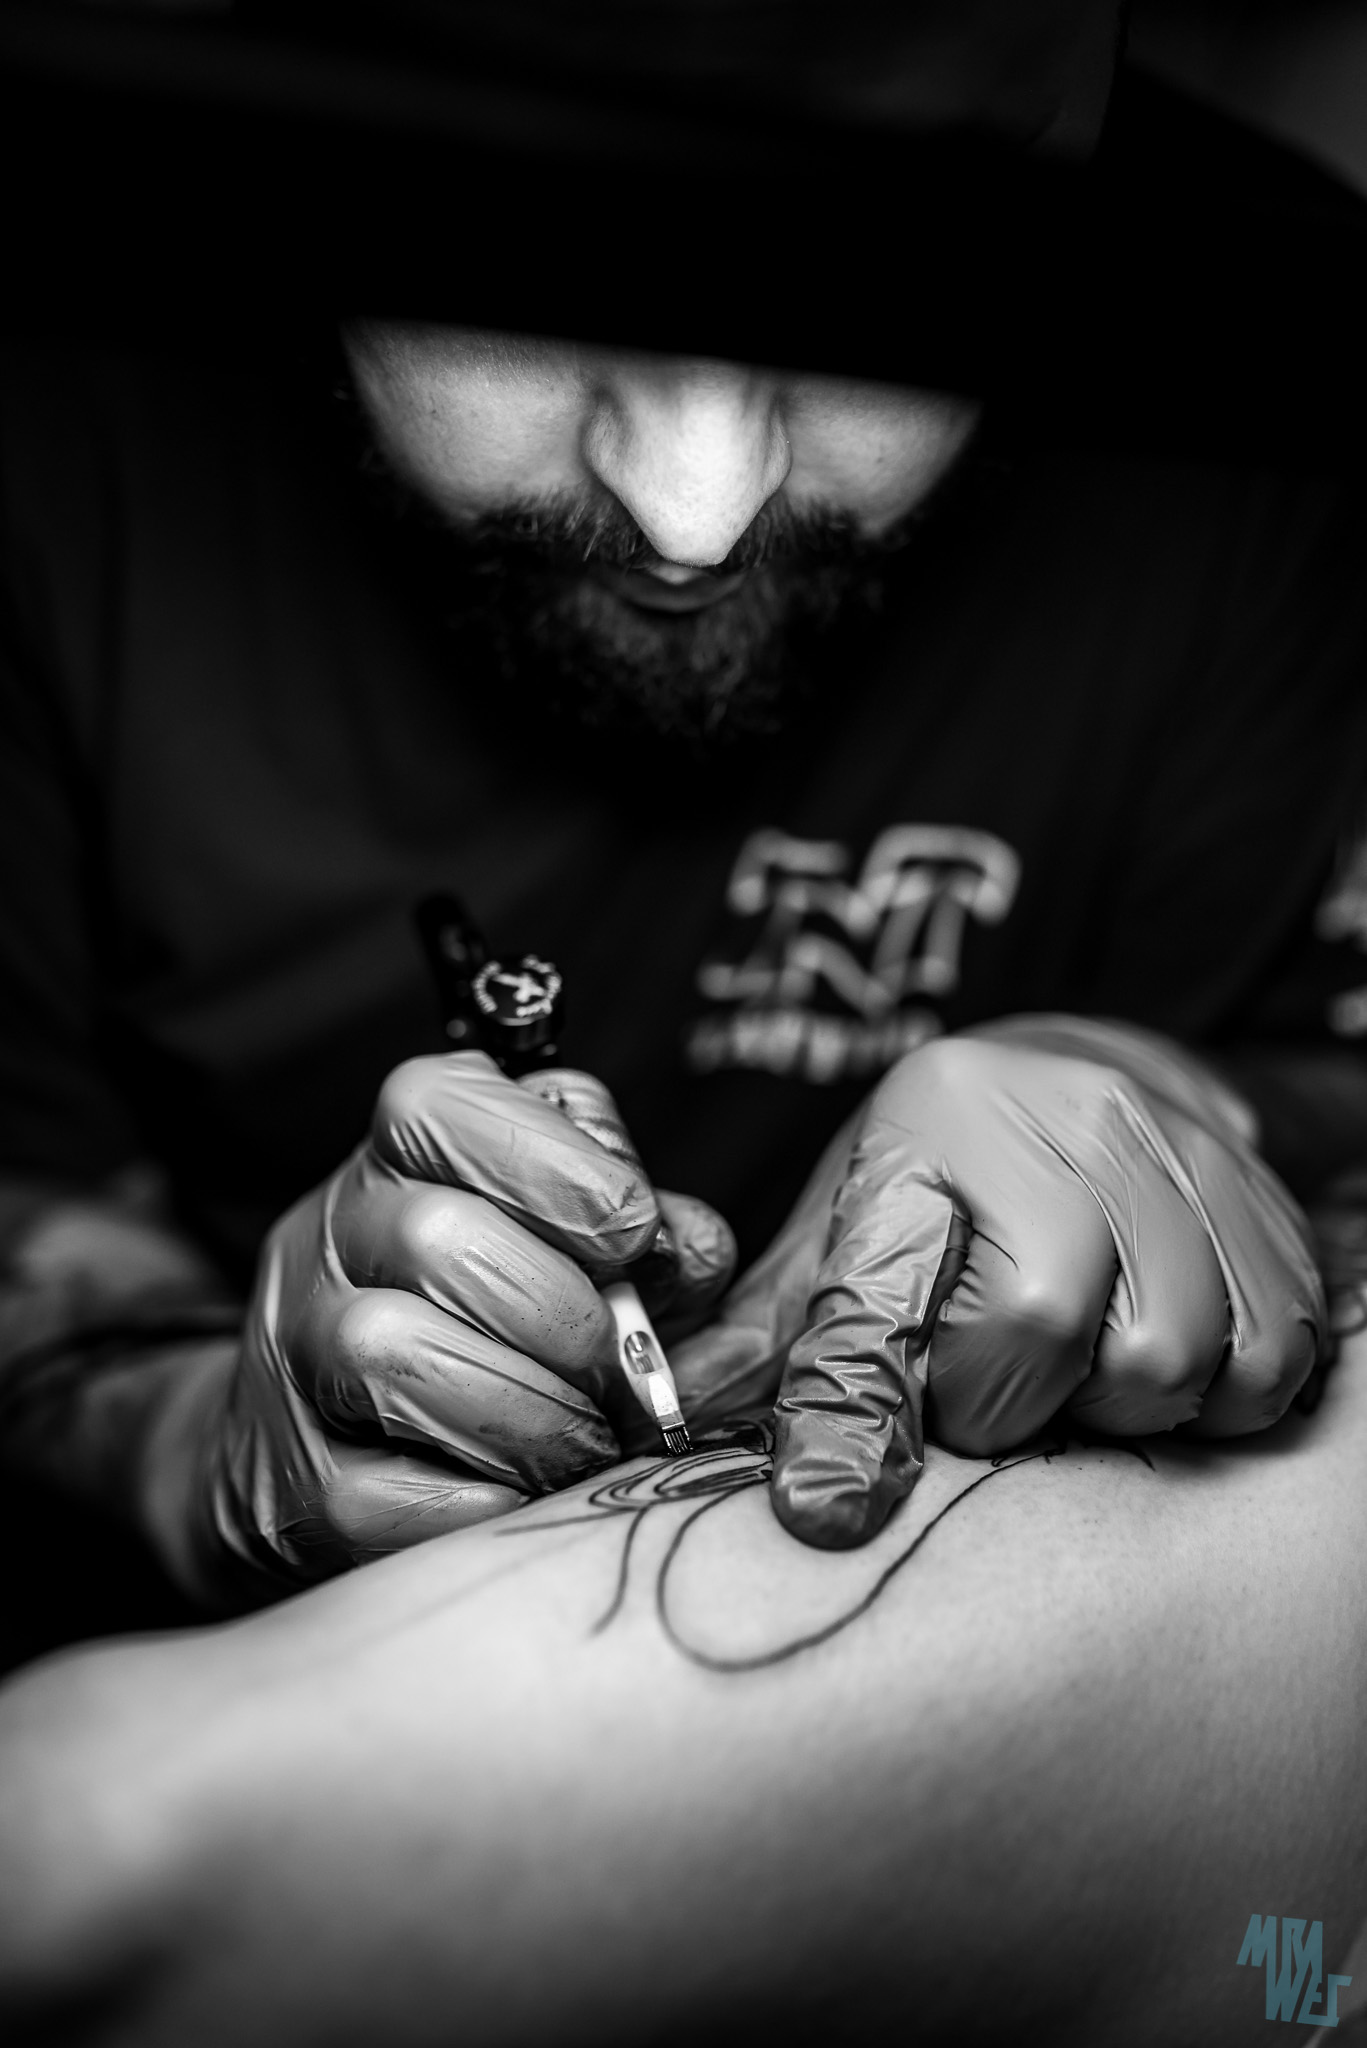 Nat_tattoo_Tešlo__055__web